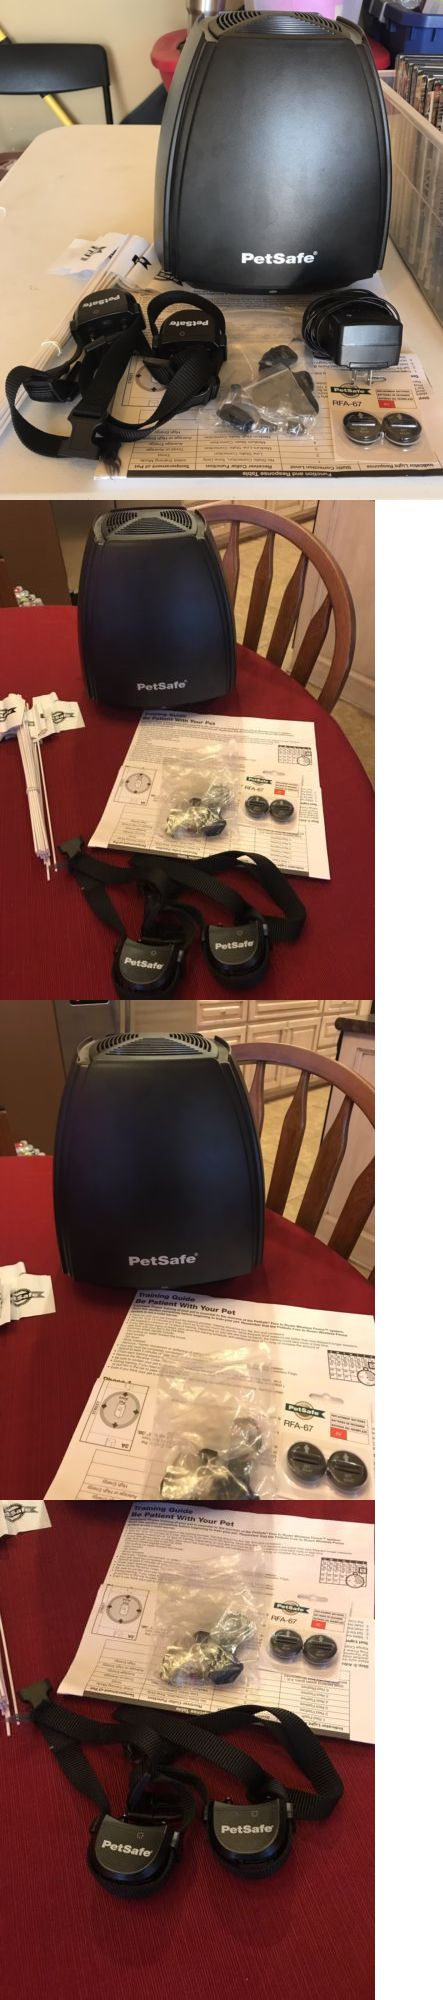 Electronic Fences 116388: Petsafe Free To Roam Wireless Fence With 2 Pet Receiver Collars. Waterproof -> BUY IT NOW ONLY: $250 on eBay!